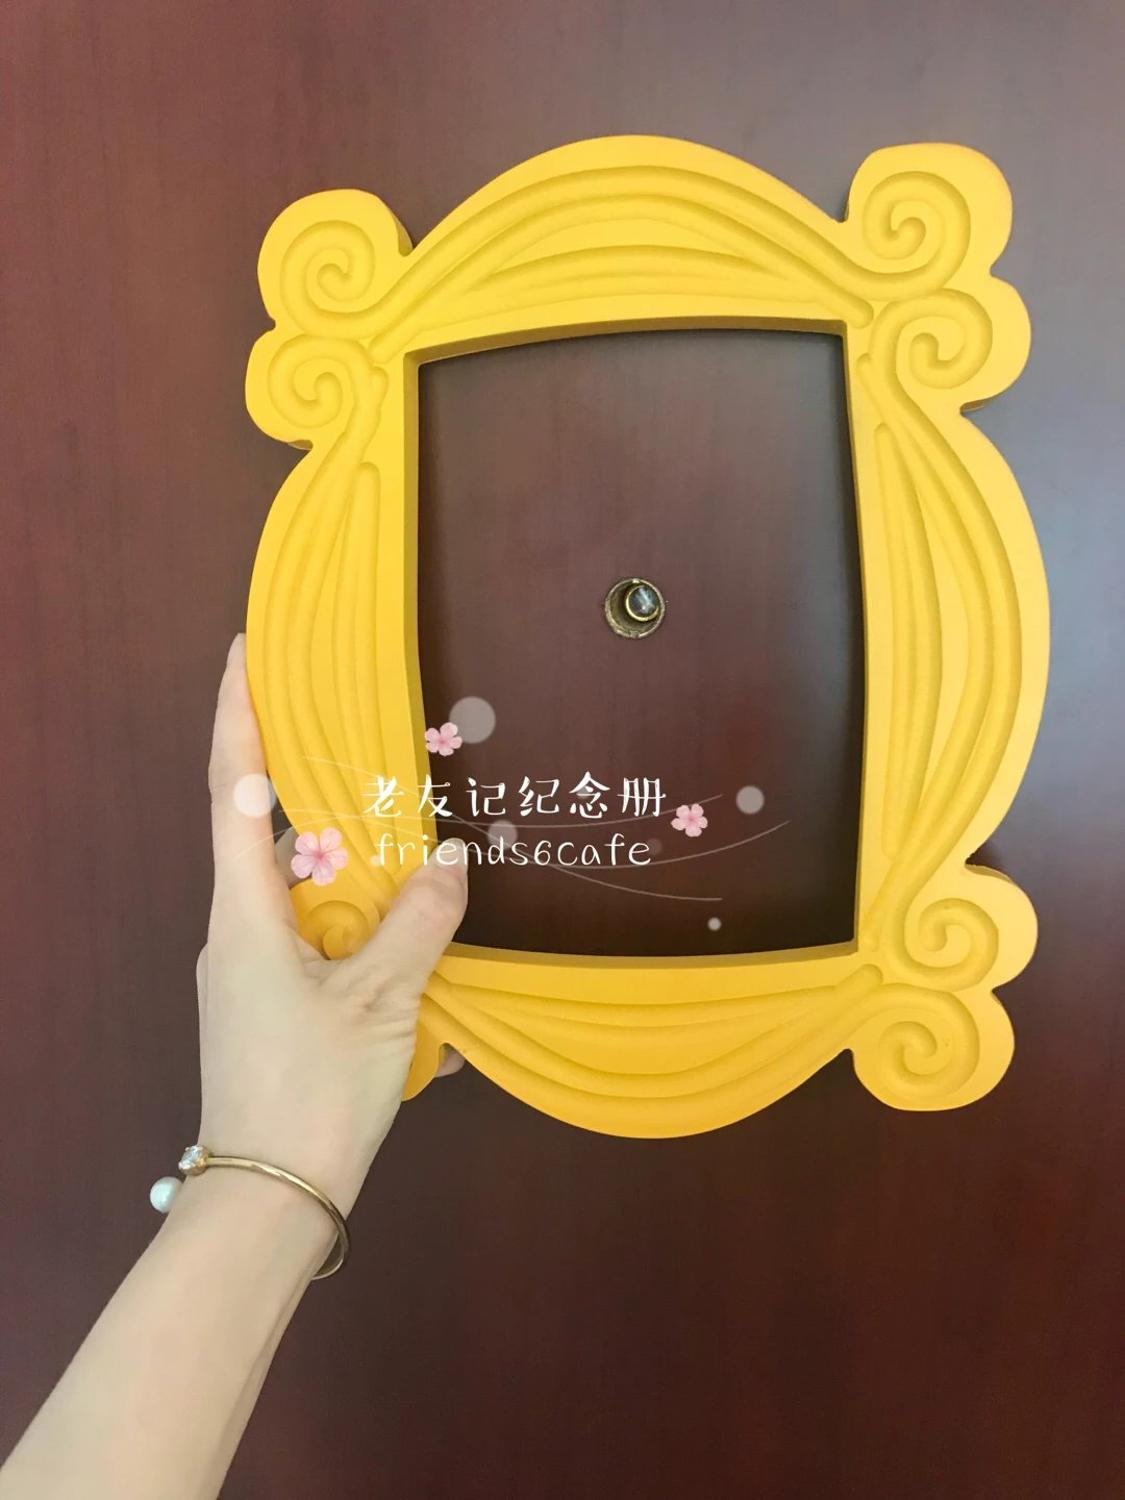 New Friends Frame TV Show Monica Photo Frame Door Yellow Very Good Finish Loveful